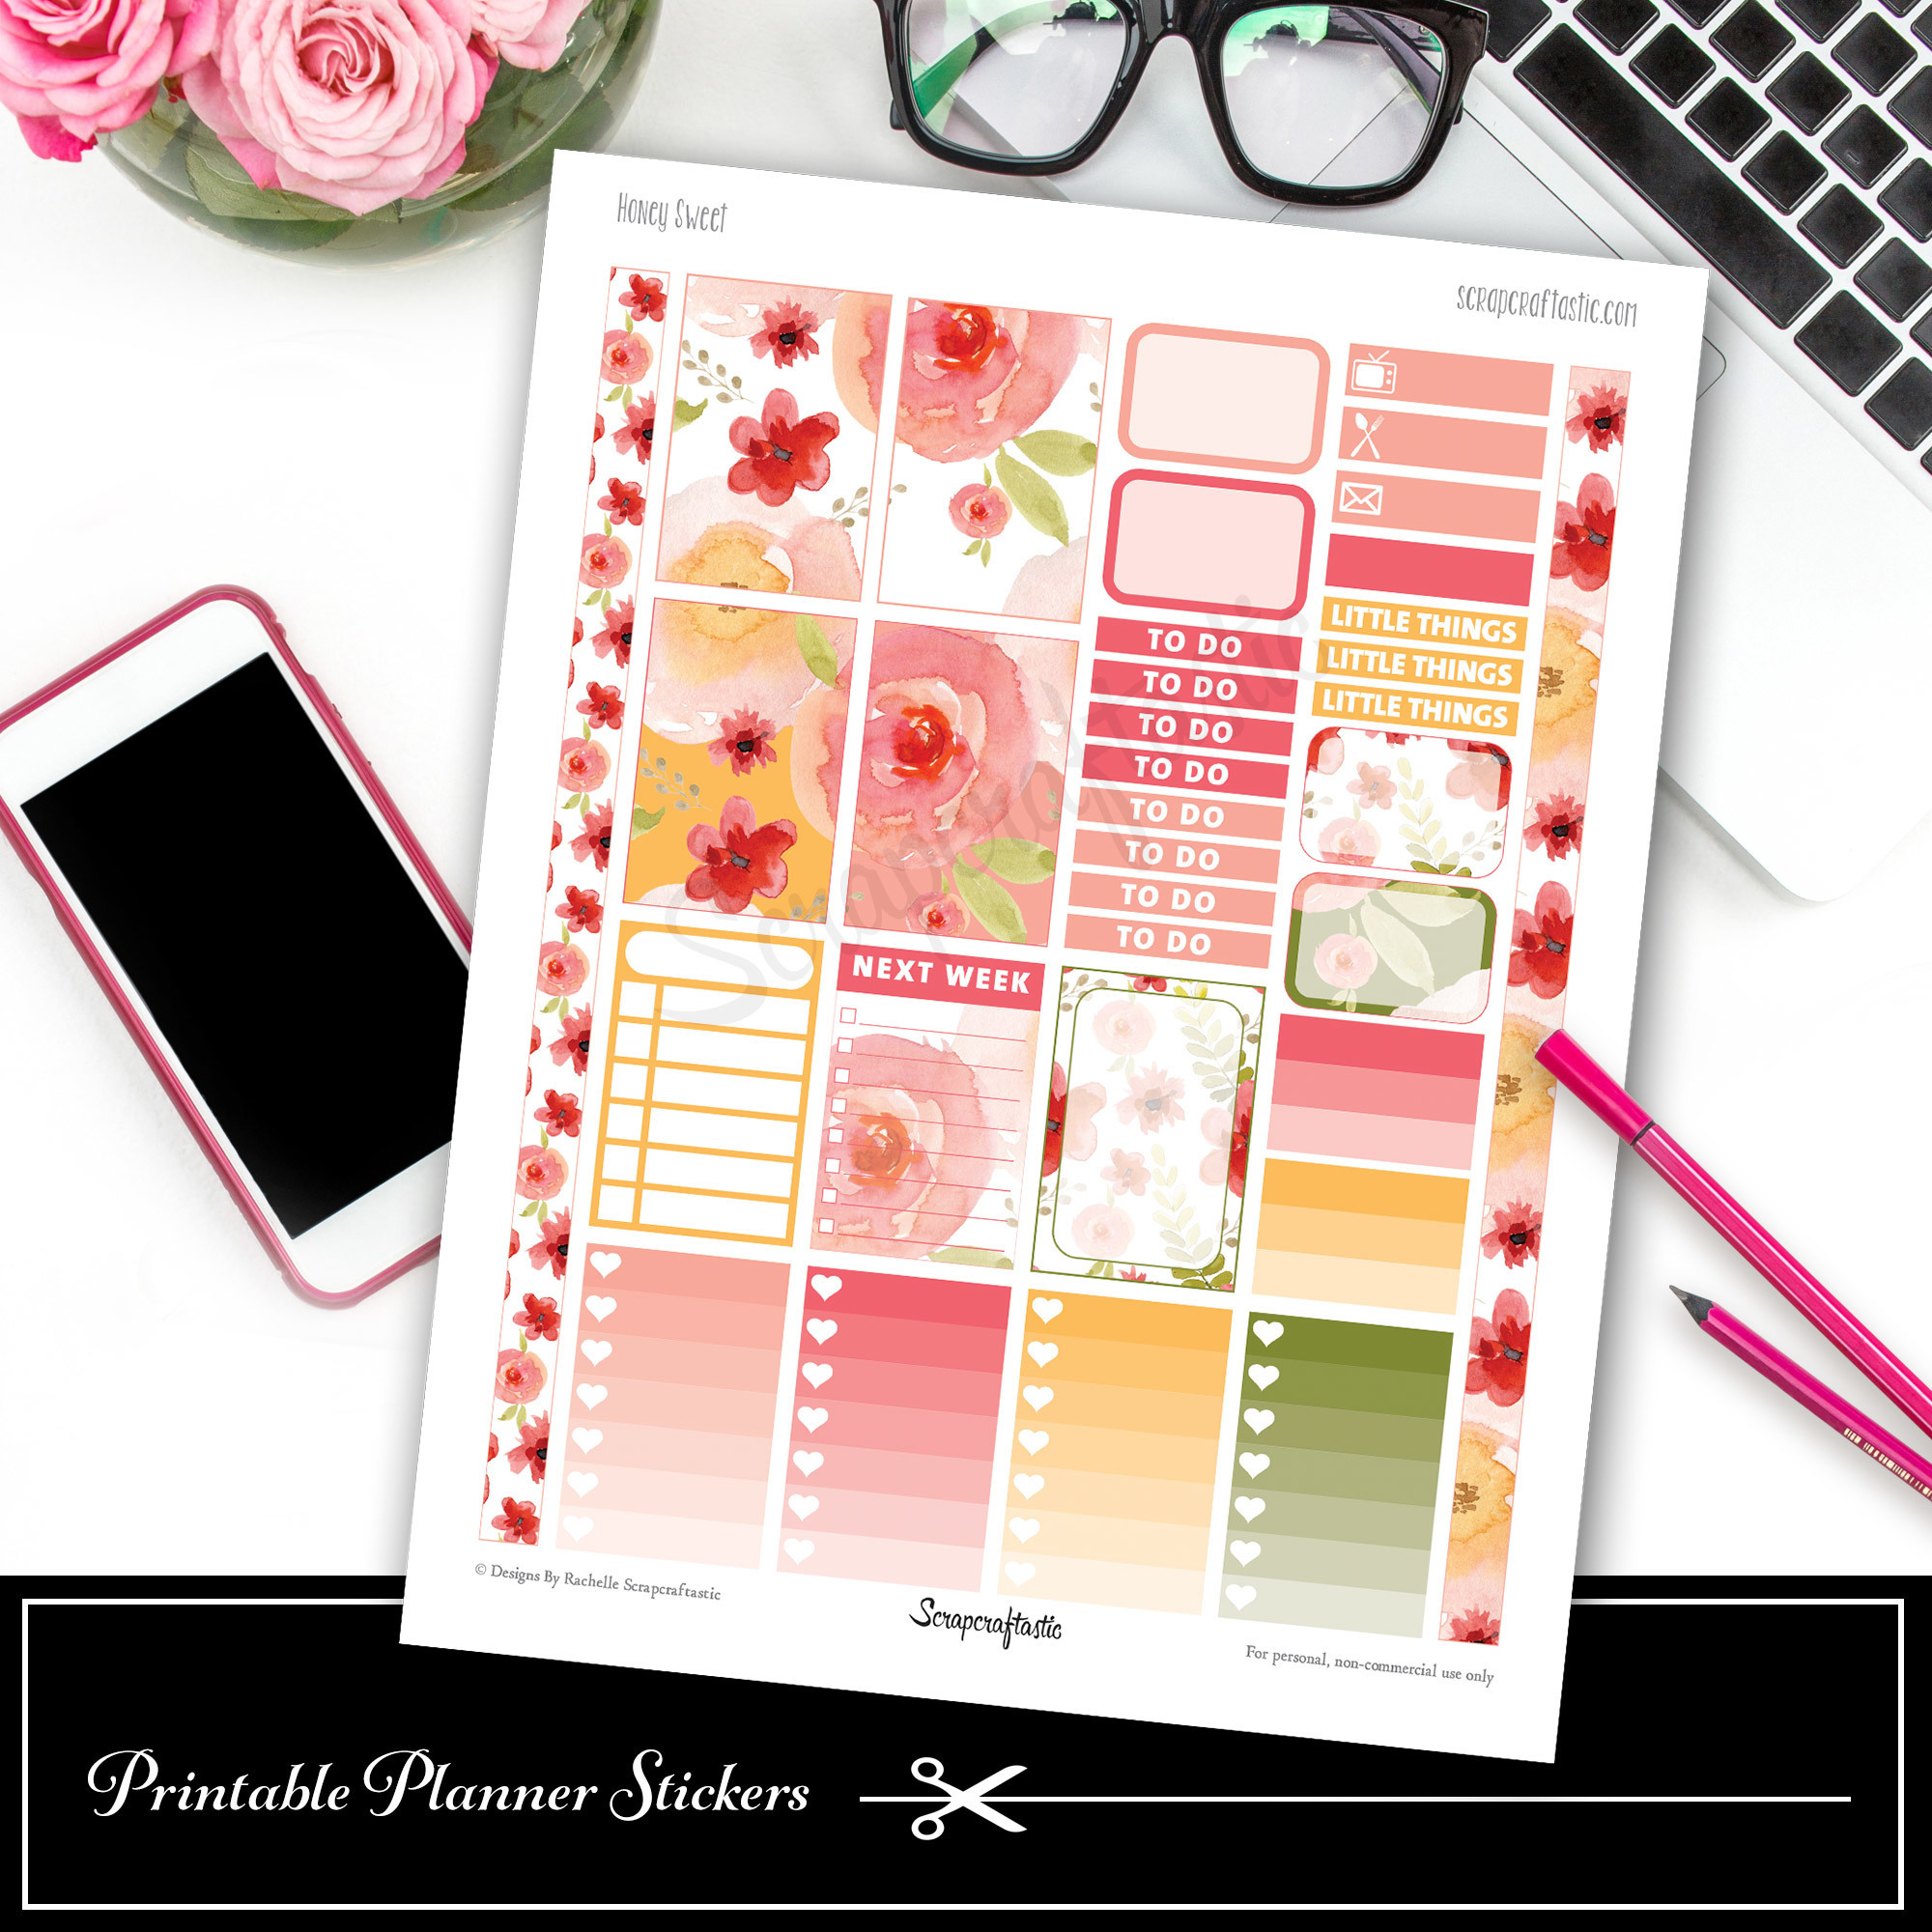 Honey Sweet Classic Happy Planner Printable Planner Stickers 0500